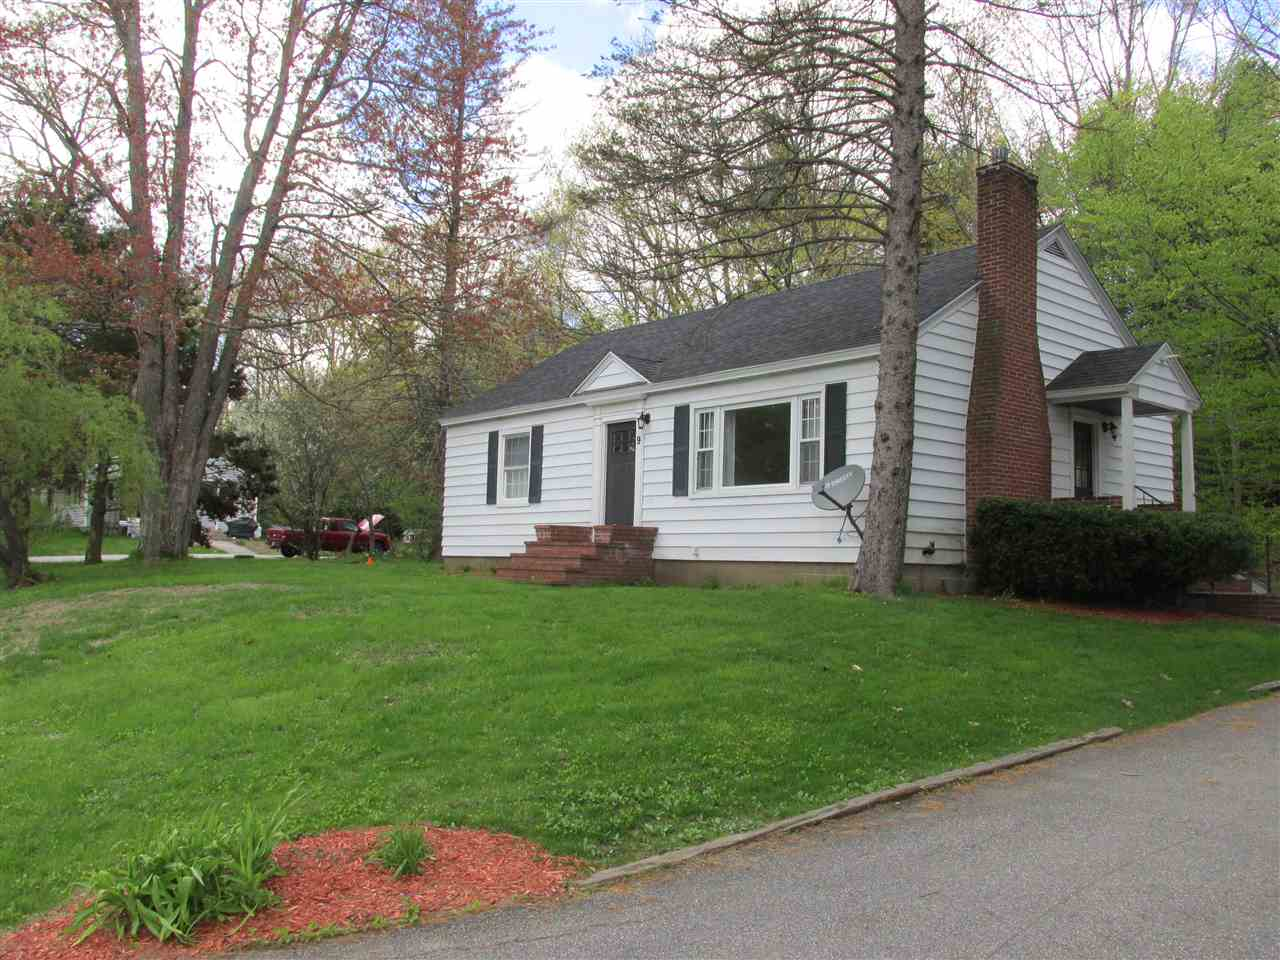 MLS 4745561: 9 Laurel Street, New Ipswich NH